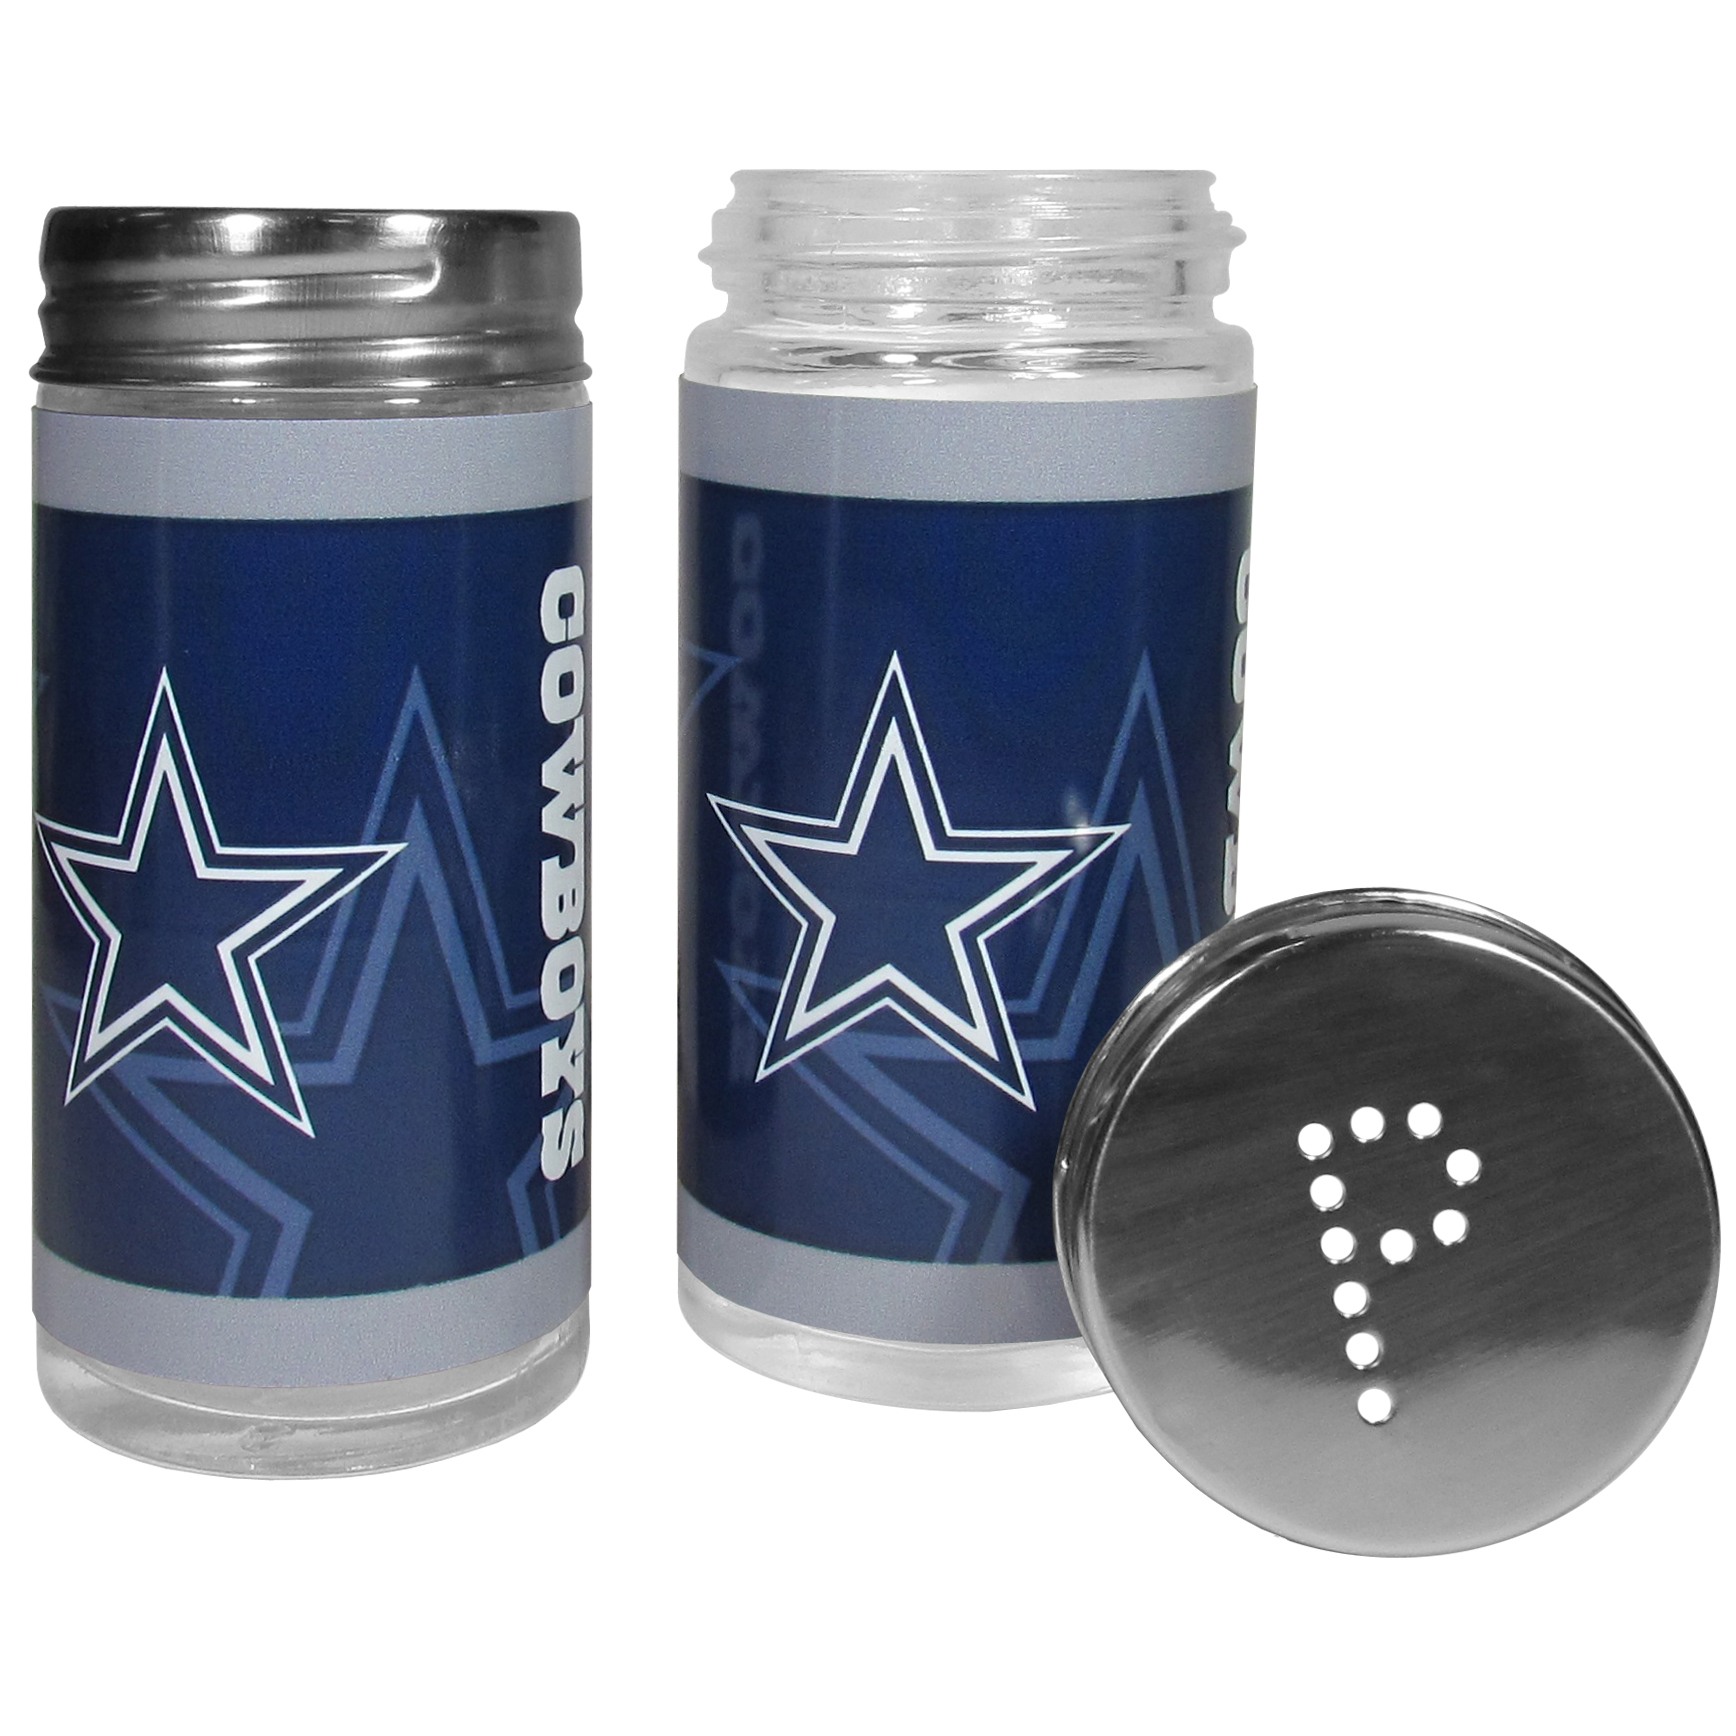 Dallas Cowboys Tailgater Salt & Pepper Shakers - No tailgate party is complete without your Dallas Cowboys salt & pepper shakers featuring bright team graphics. The glass shakers are 3.75 inches tall and the screw top lids have holes that spell out P and S. These team shakers are a great grill accessory whether you are barbecuing on the patio, picnicing or having a game day party.